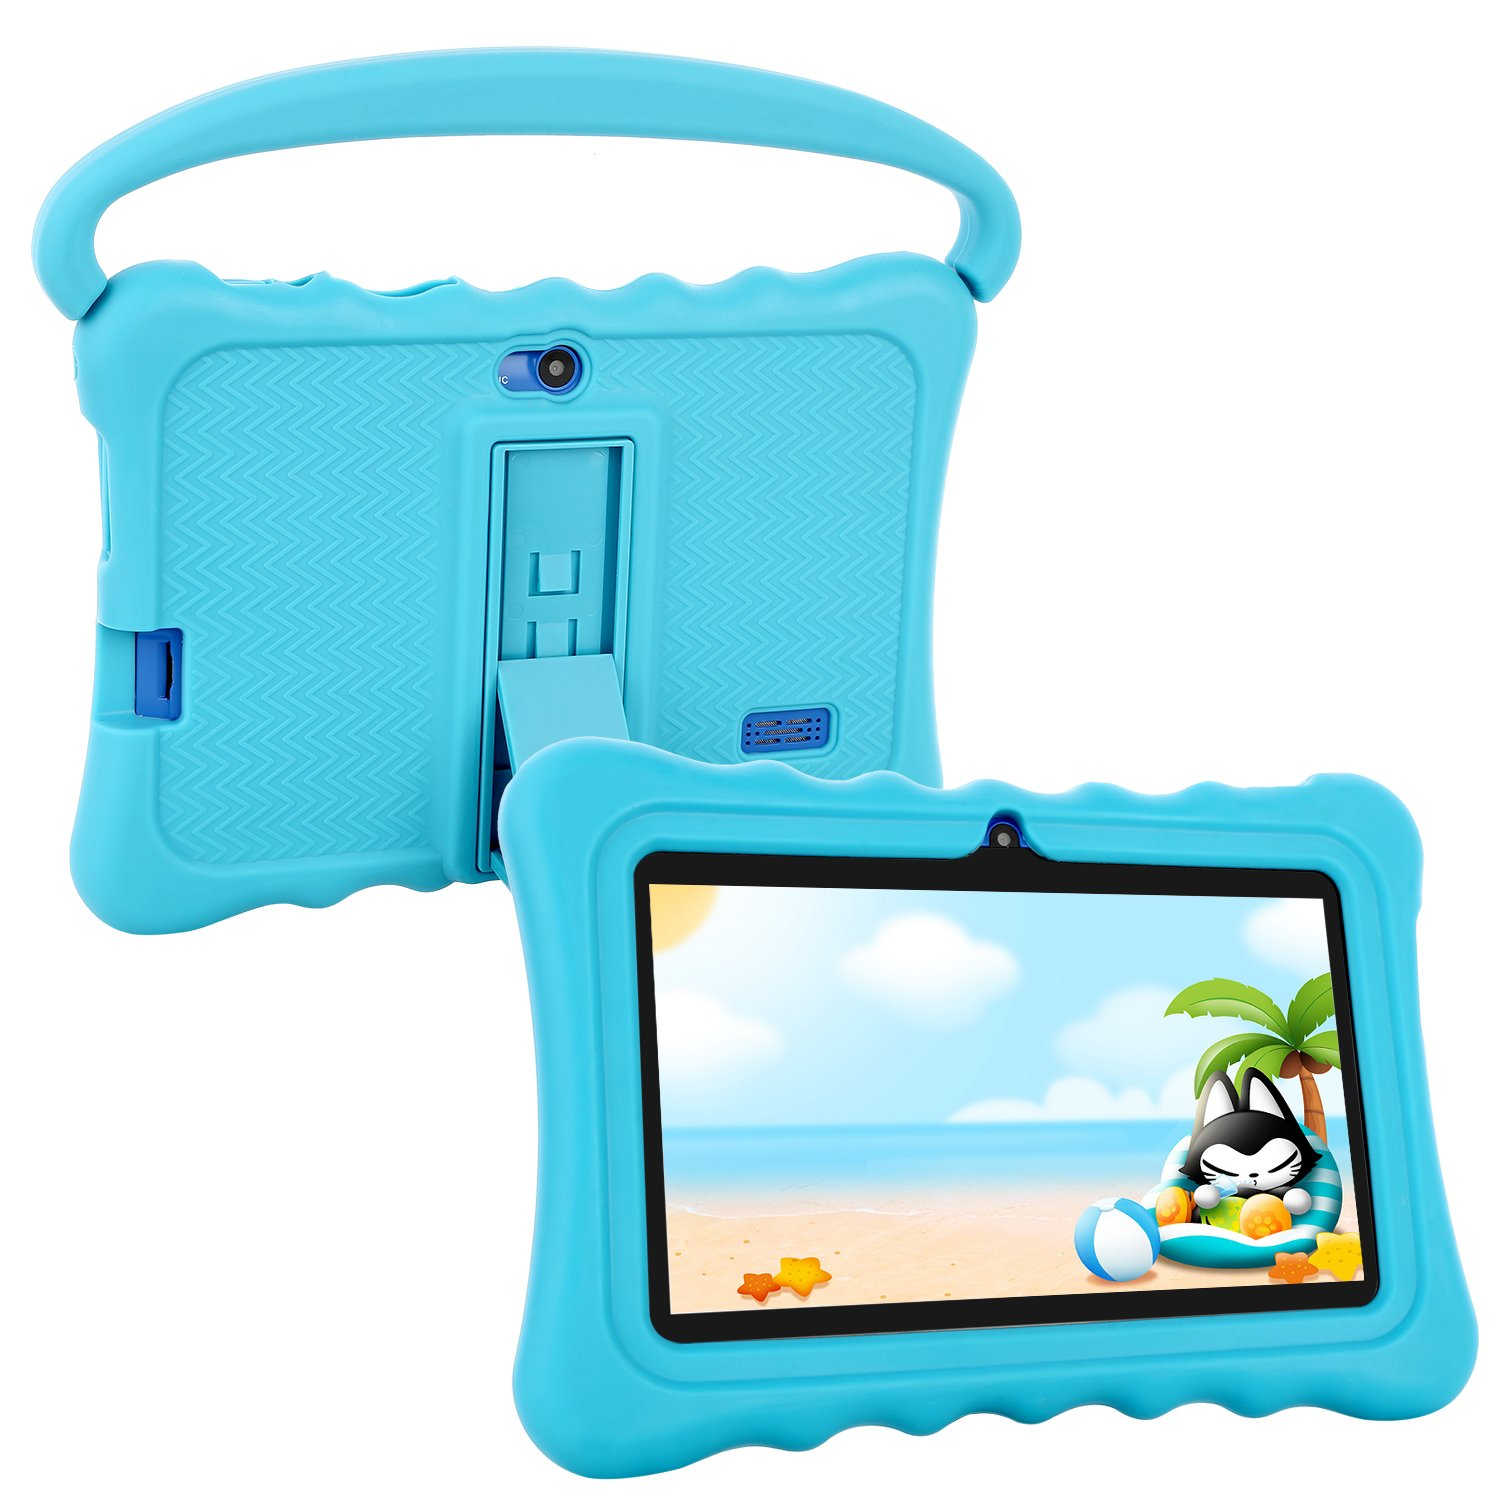 Kids Tablet,Auto Beyond 7 inch Tablet for Kids Google Android 6.0 with Handle and Stand Silicone Case,IPS Display Screen,Playstore,8GB ROM,1GB RAM,Wi-Fi,Bluetooth (Blue) by Auto Beyond